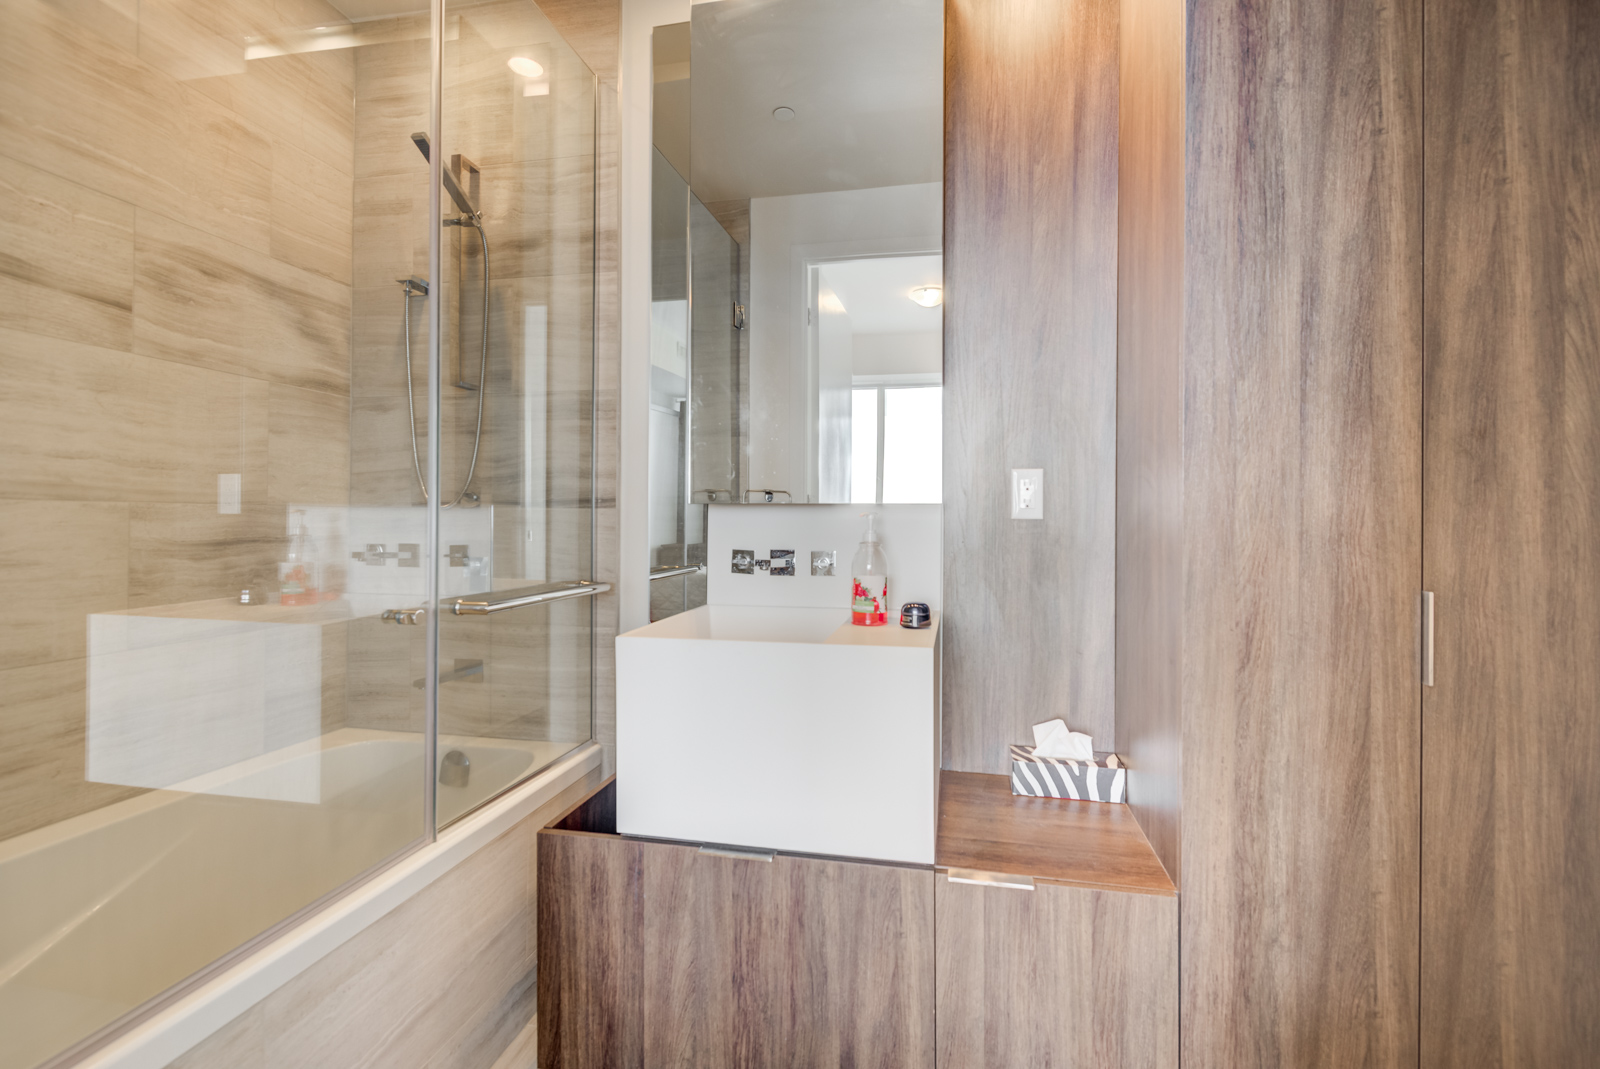 4-piece ensuite master bathroom with sink, cabinets, shower and tub.